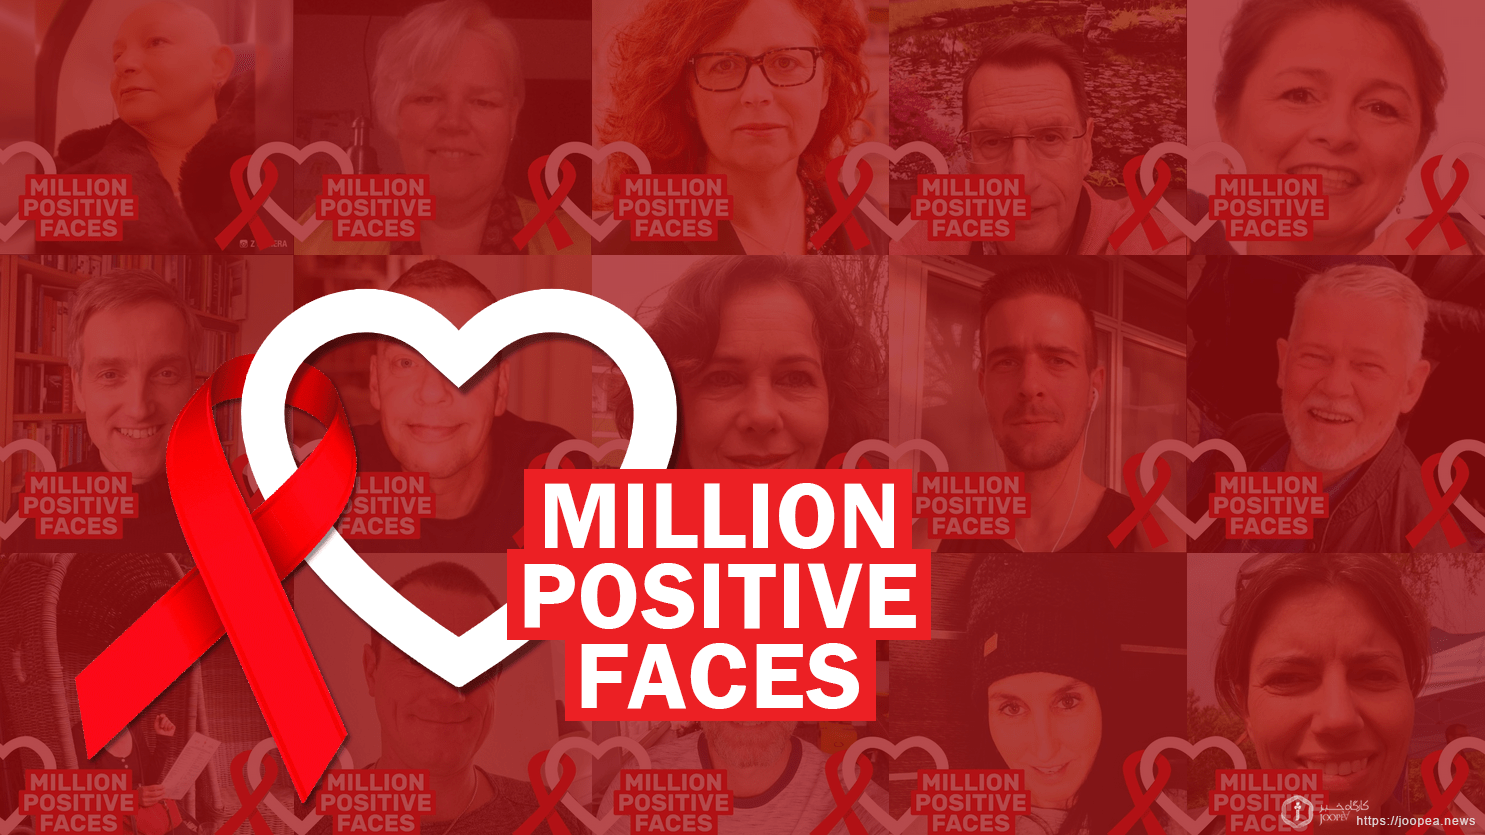 Million Positive Faces Campaign #millionpositivefaces